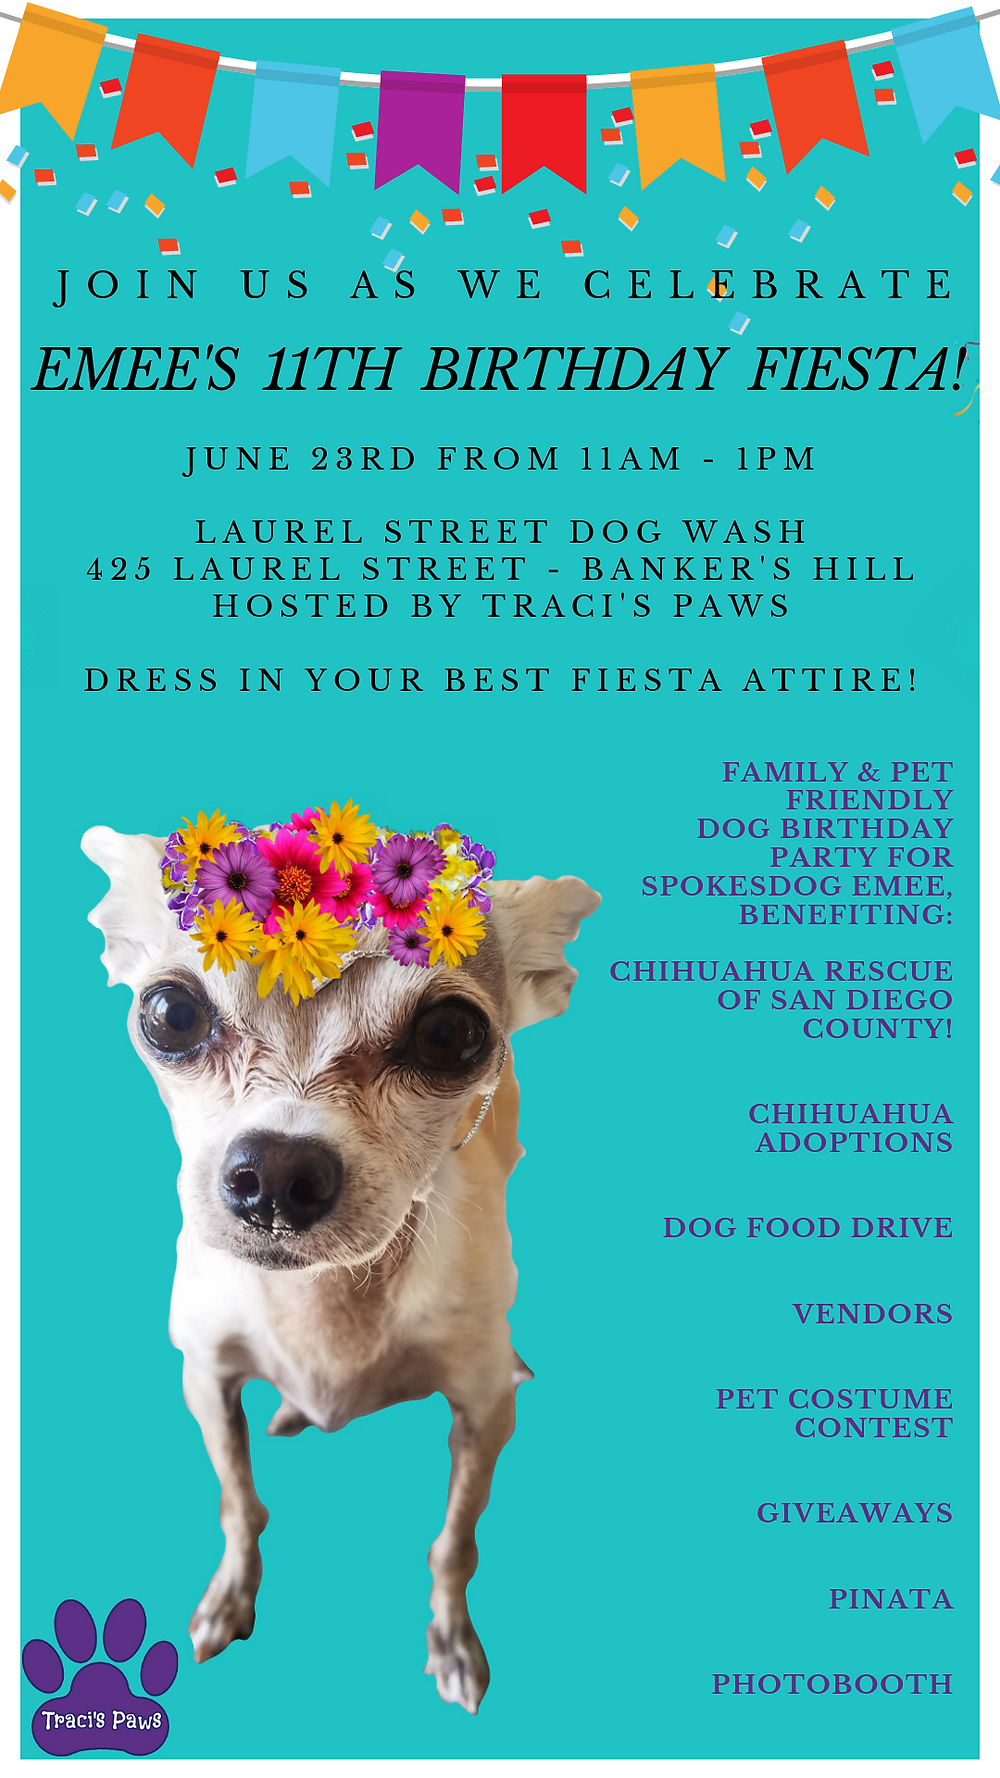 Traci's Paws Spokesdog Emee's 11th Birthday Fiesta Flyer for her party.